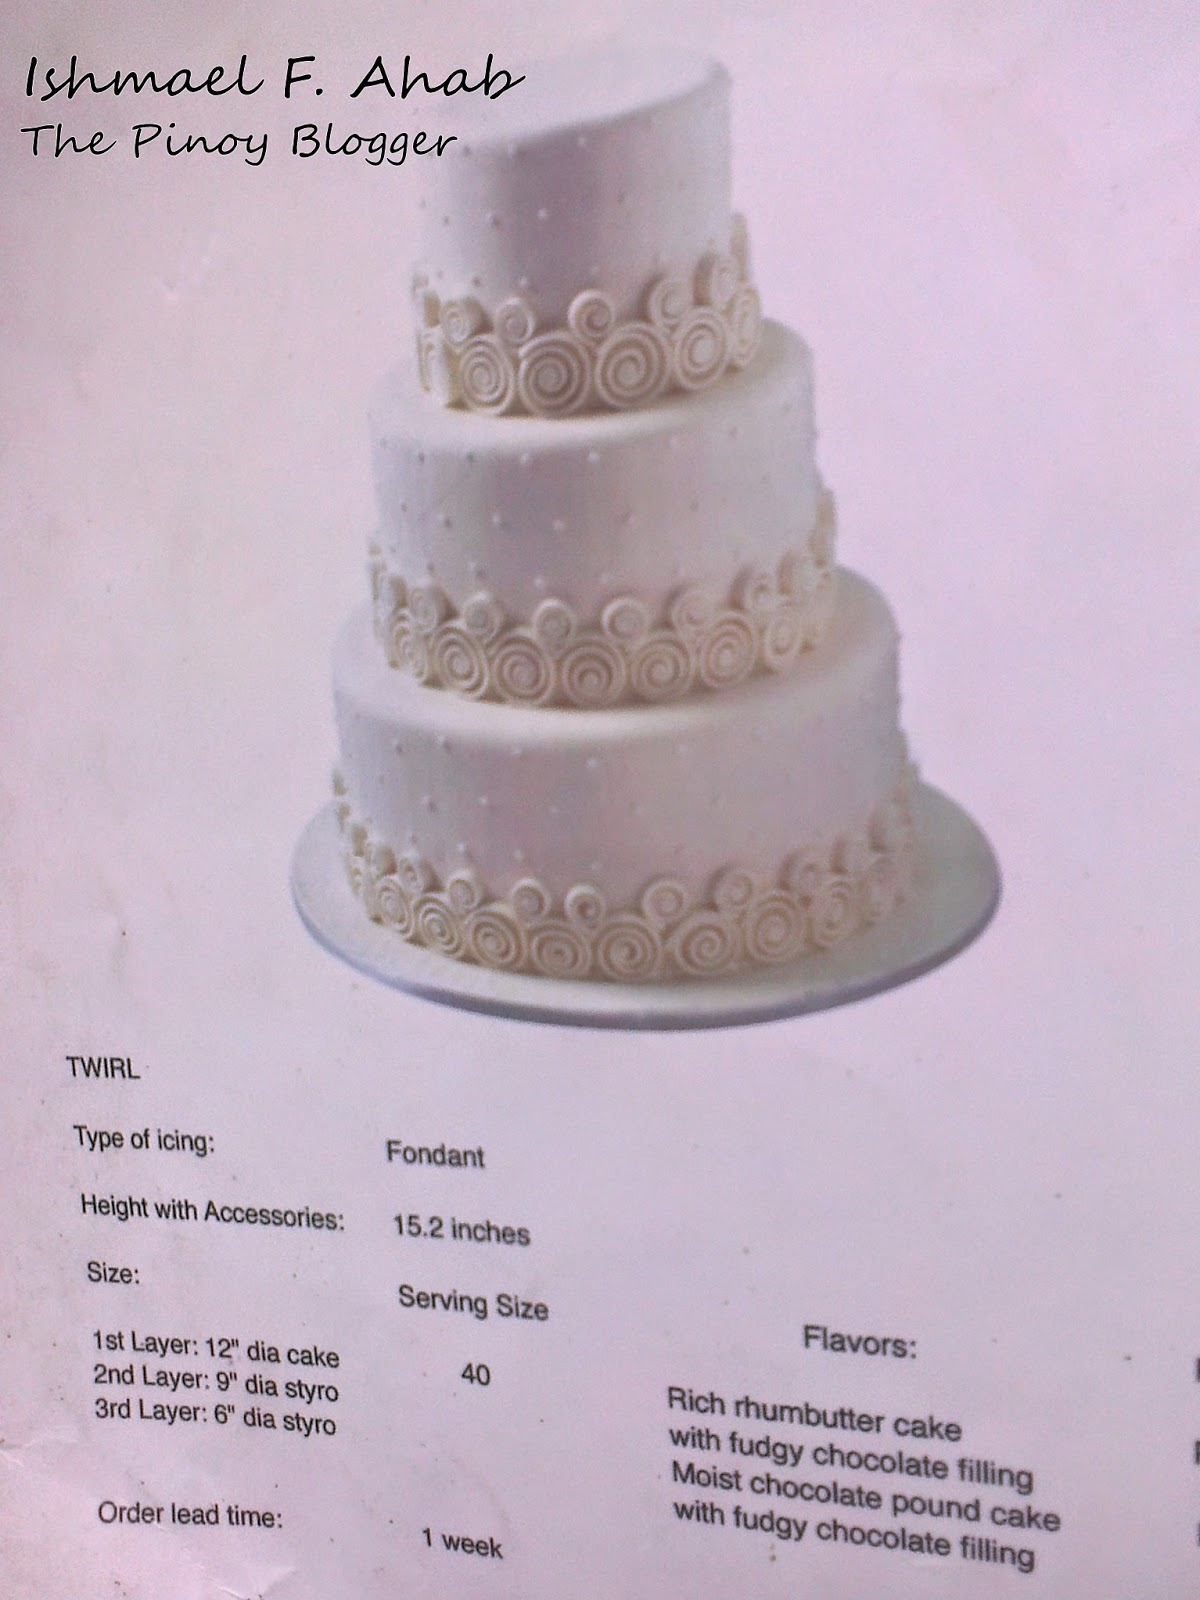 Modern wedding cakes for the holiday  Goldilocks wedding cakes     Goldilocks wedding cakes pictures and price